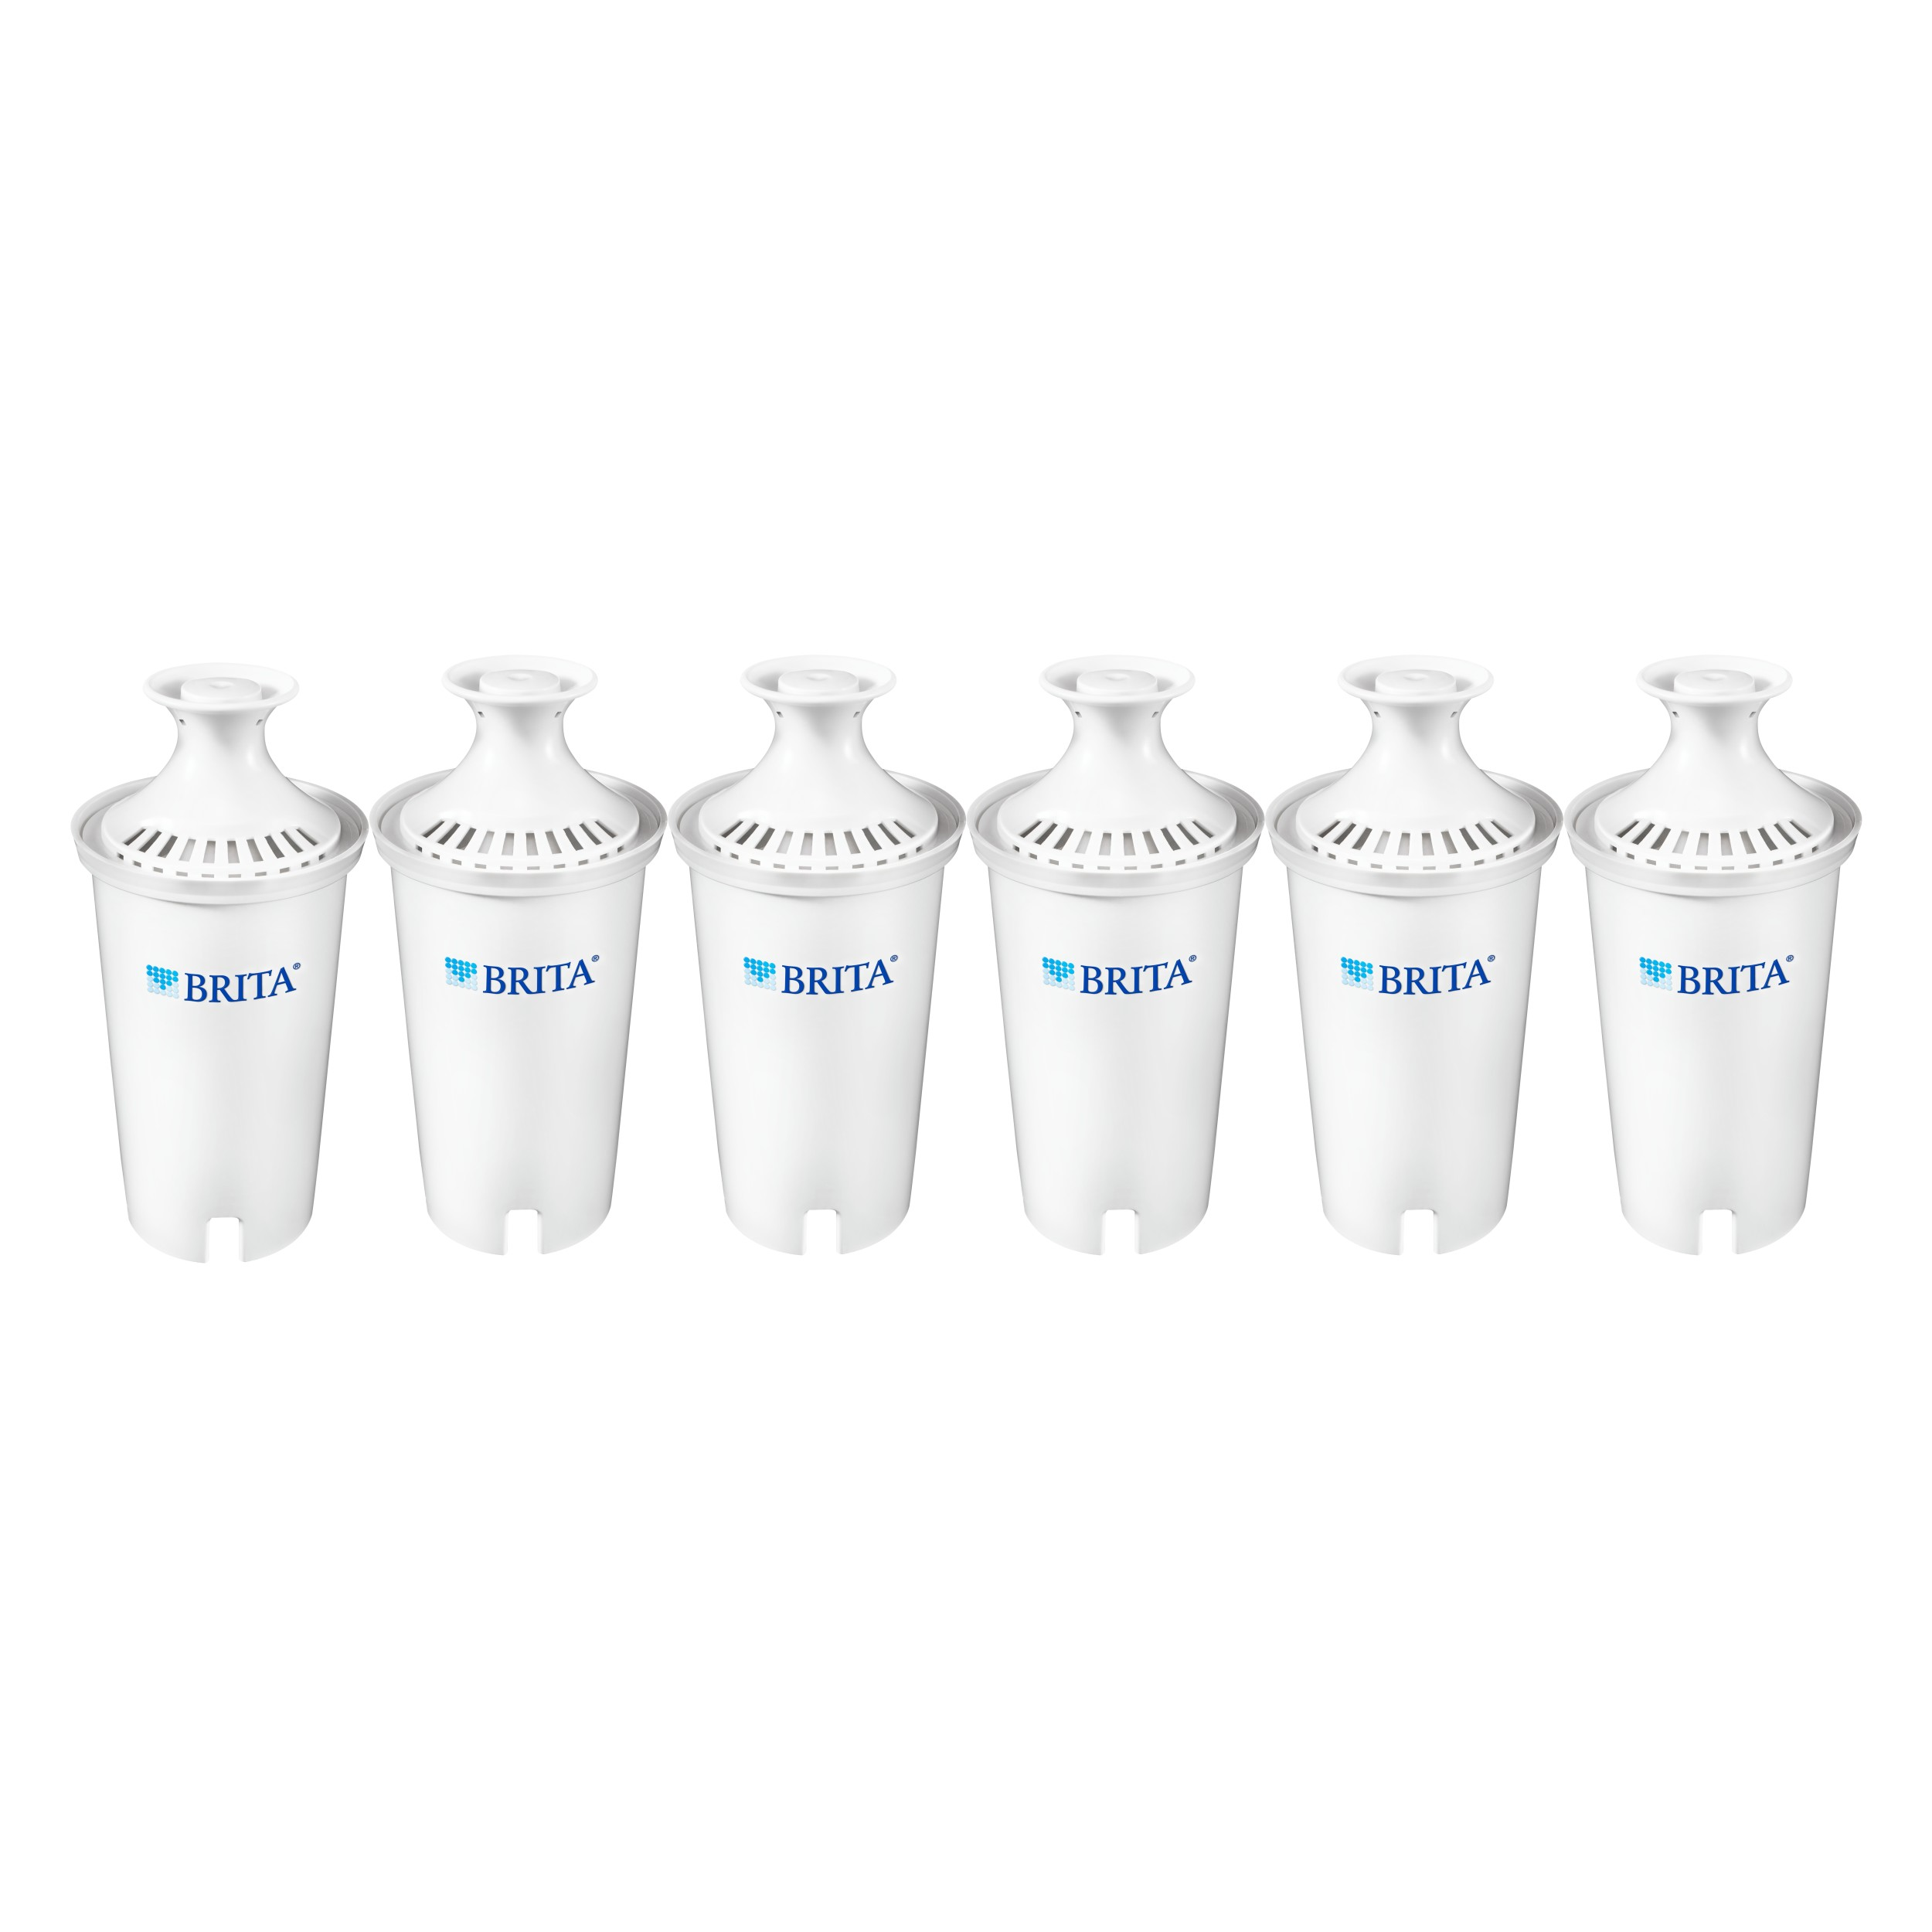 Brita Standard Water Filter Replacements, BPA Free, 6 Count